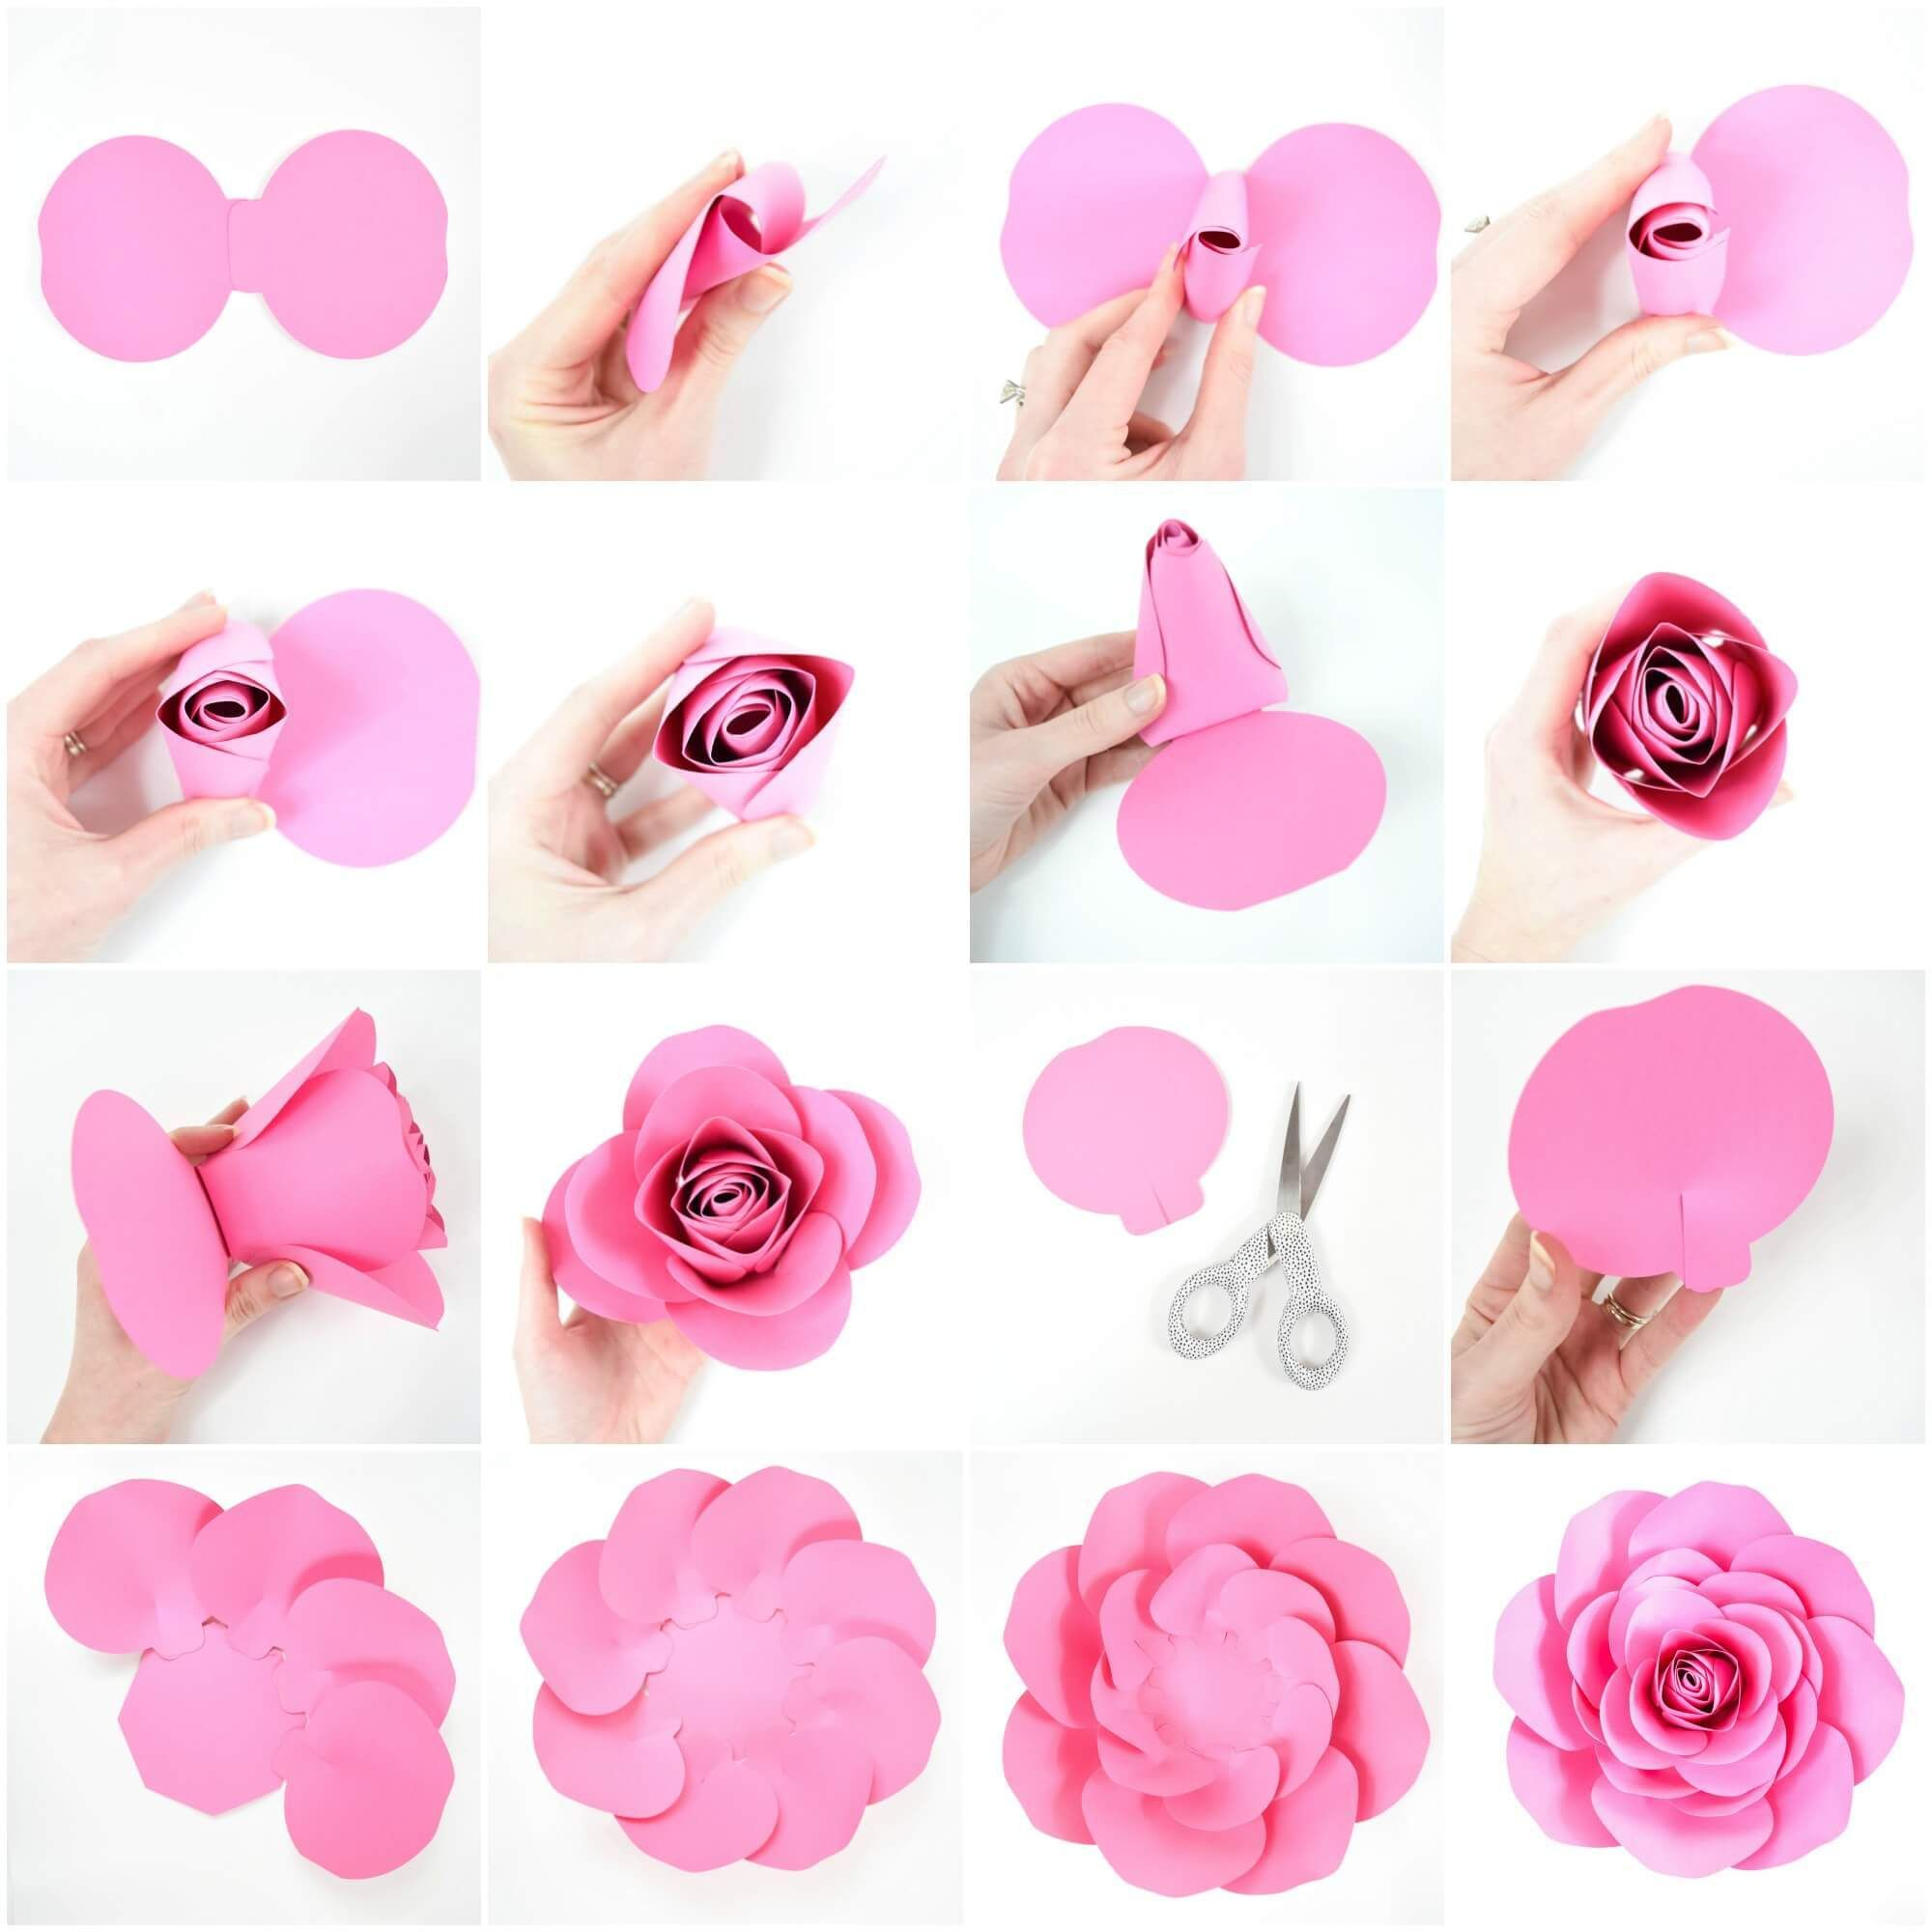 Free Large Paper Rose Template Diy Camellia Rose Tutorial How To Make Easy Large Paper Roses Fr Paper Roses Diy Paper Flowers Diy Easy Paper Flower Template